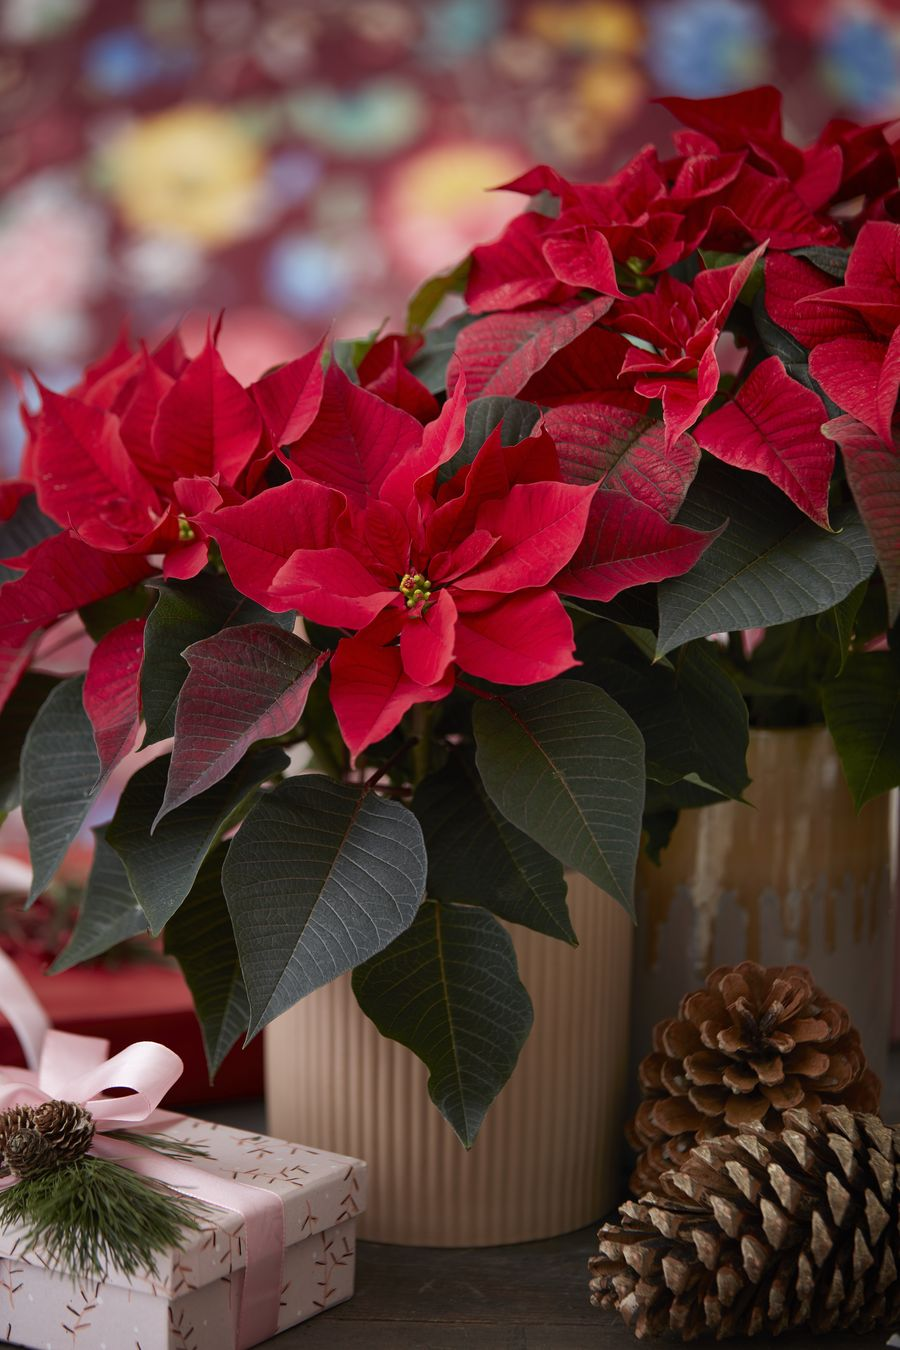 Red Poinsettias Are A Magnificent Christmas Gift Poinsettia Starsforeurope Christmastime Plantgifts Poinsettialove Plant Decor Plant Gifts Birth Flowers